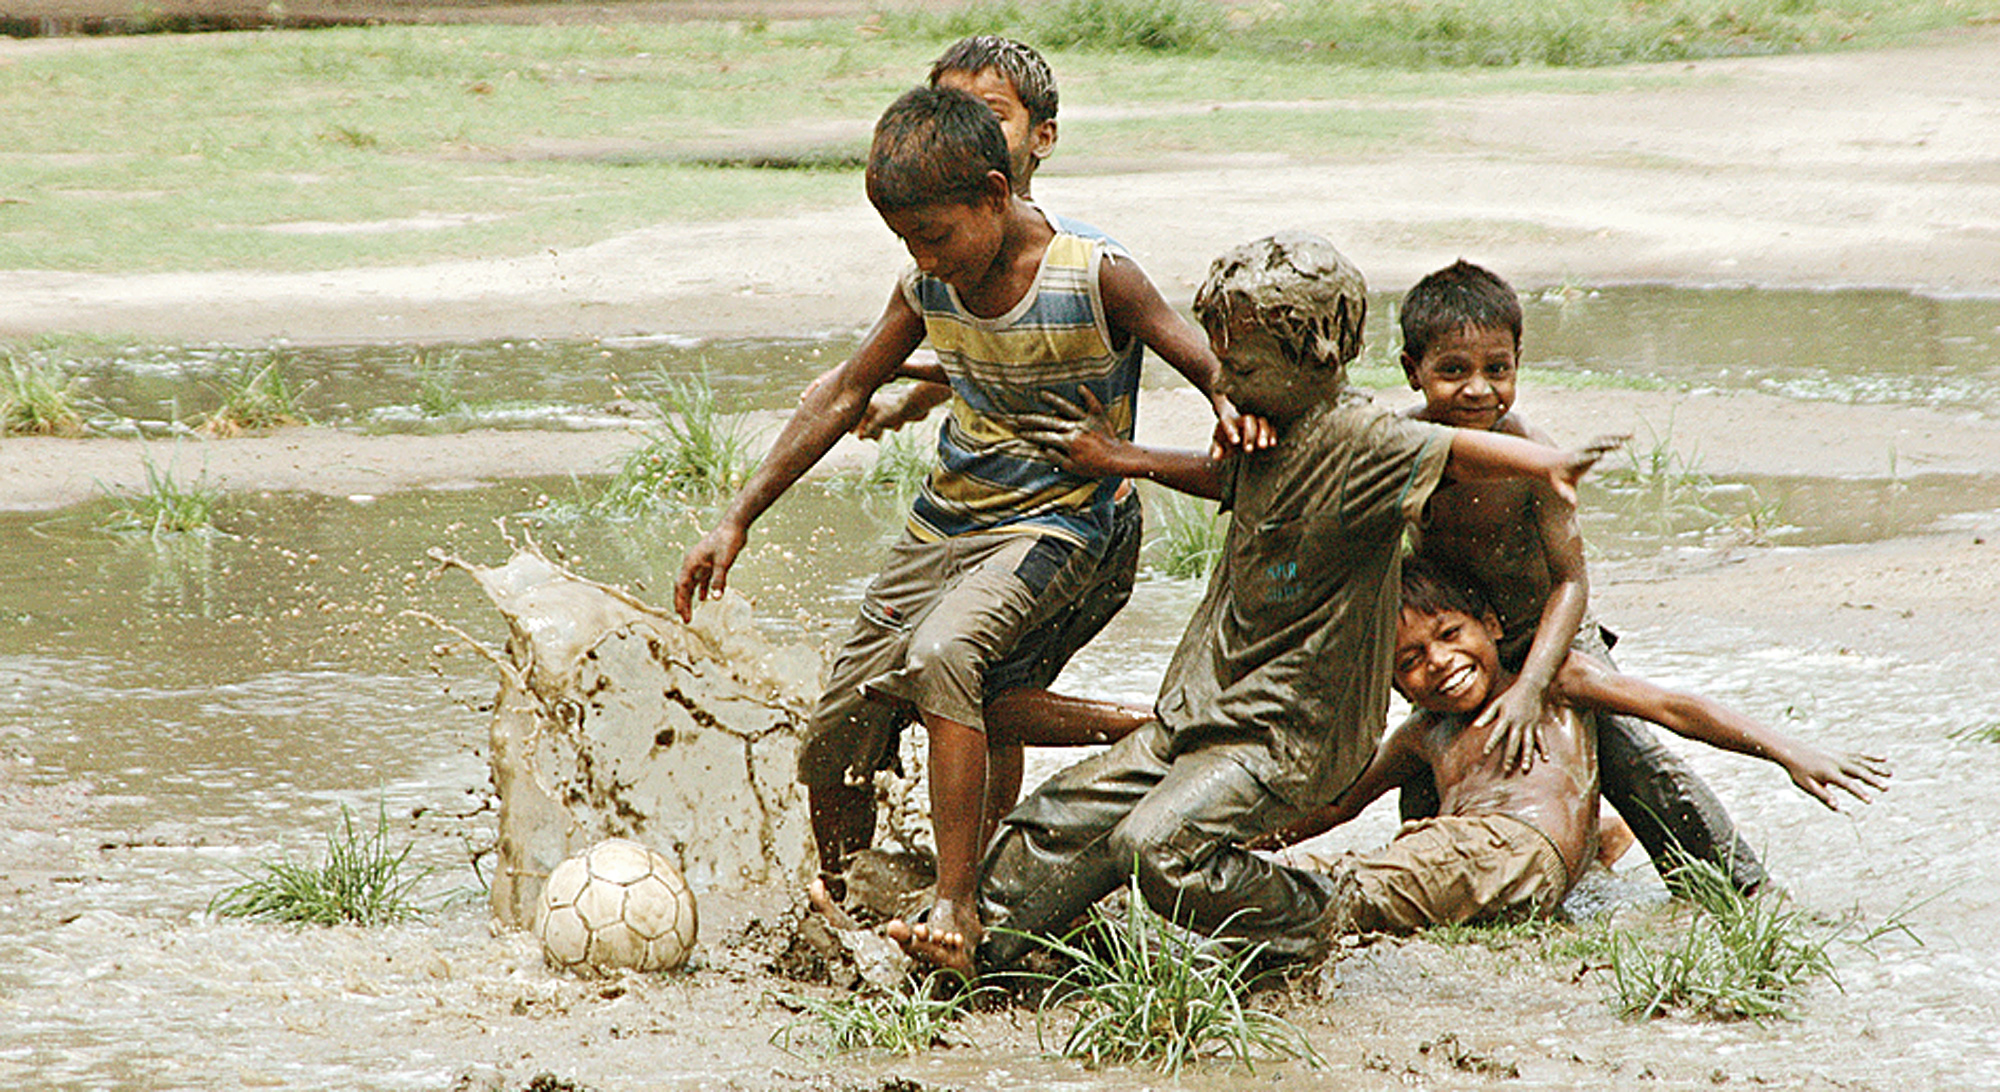 Children playing in the rain.